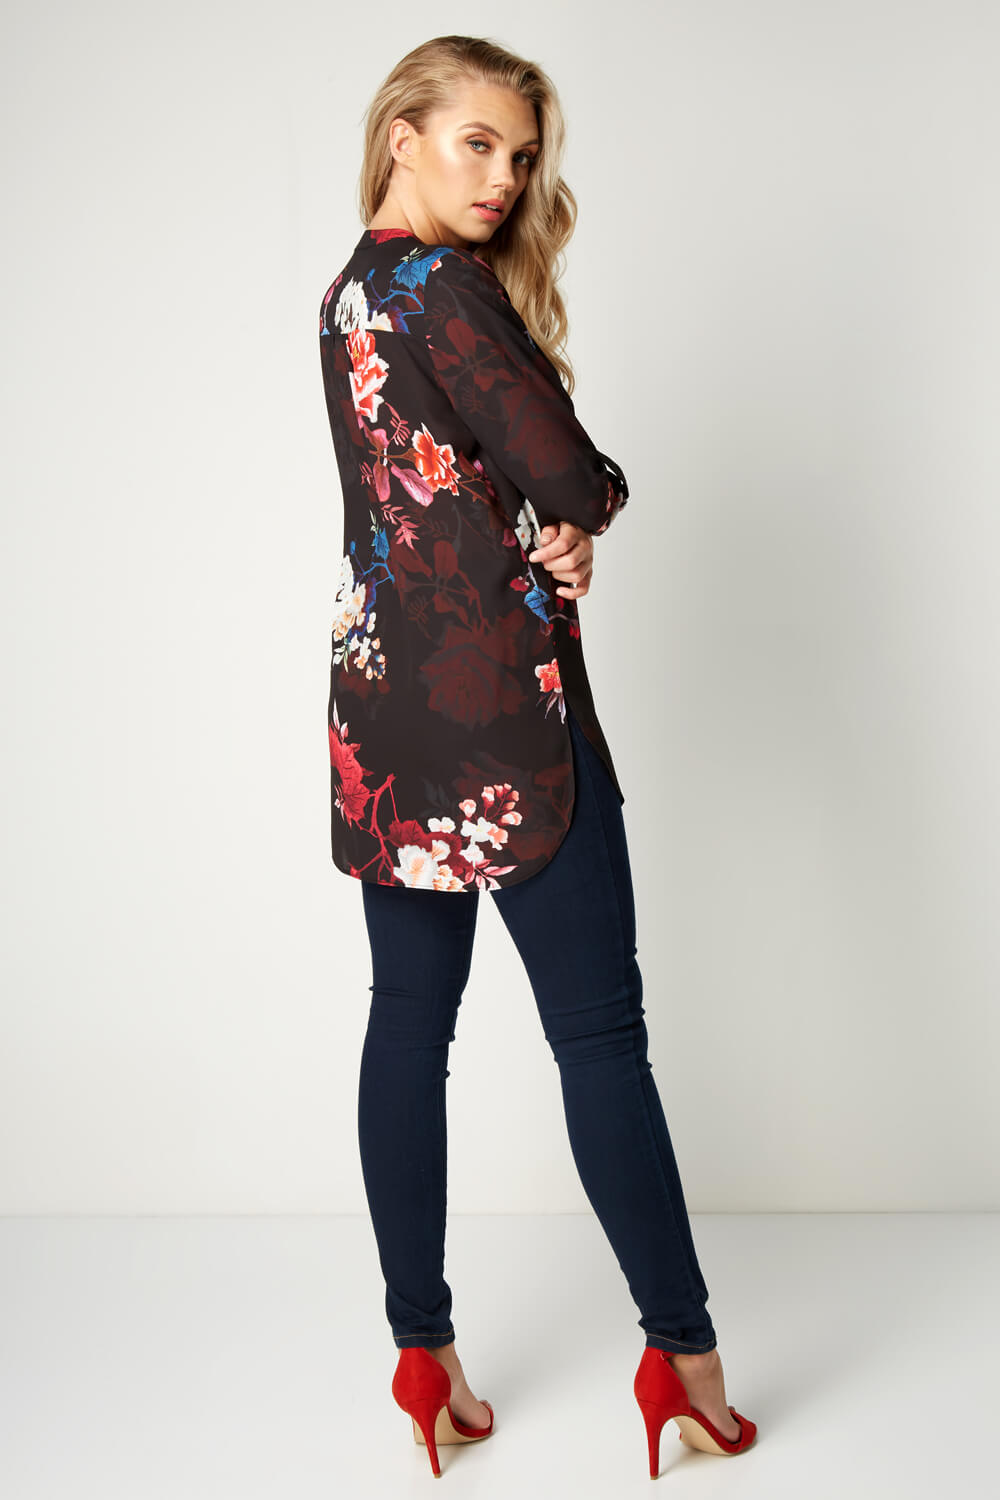 Roman-Originals-Women-039-s-Floral-3-4-Sleeve-Blouse-Everyday-Dressy-Occasions